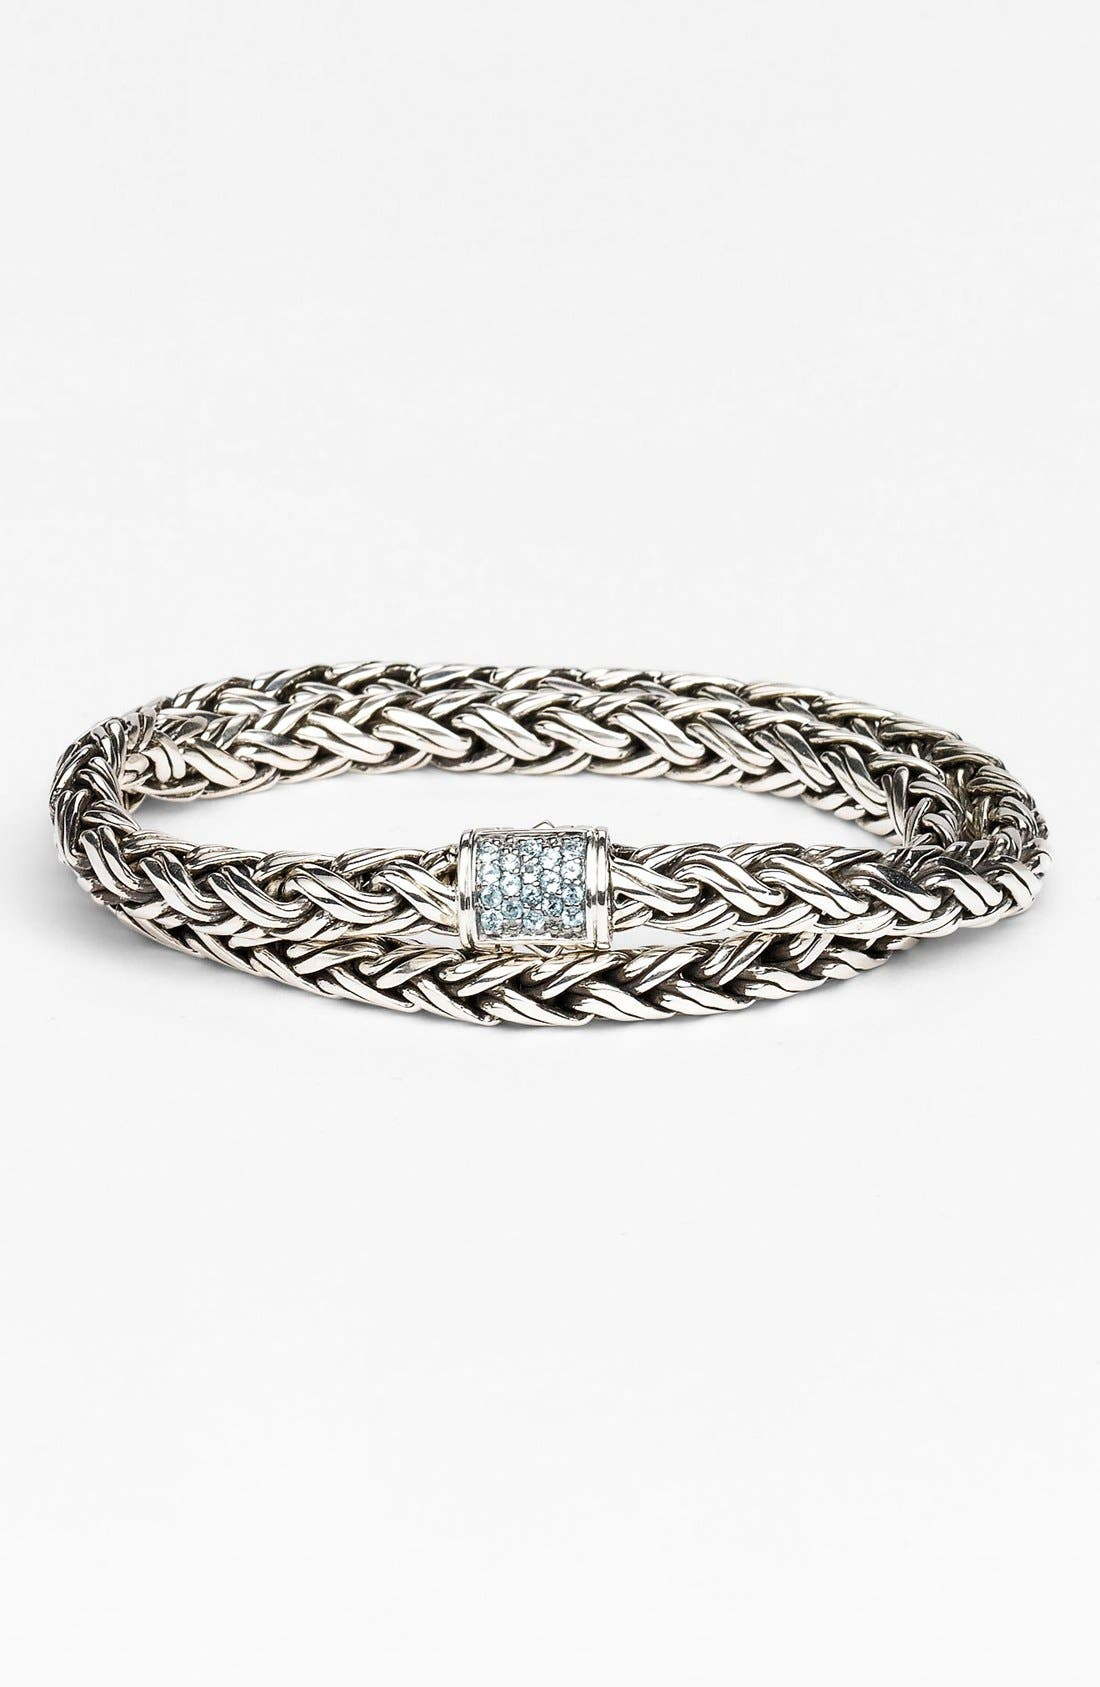 Main Image - John Hardy 'Classic Chain - Kepang' Double Wrap Chain Bracelet (Nordstrom Exclusive)